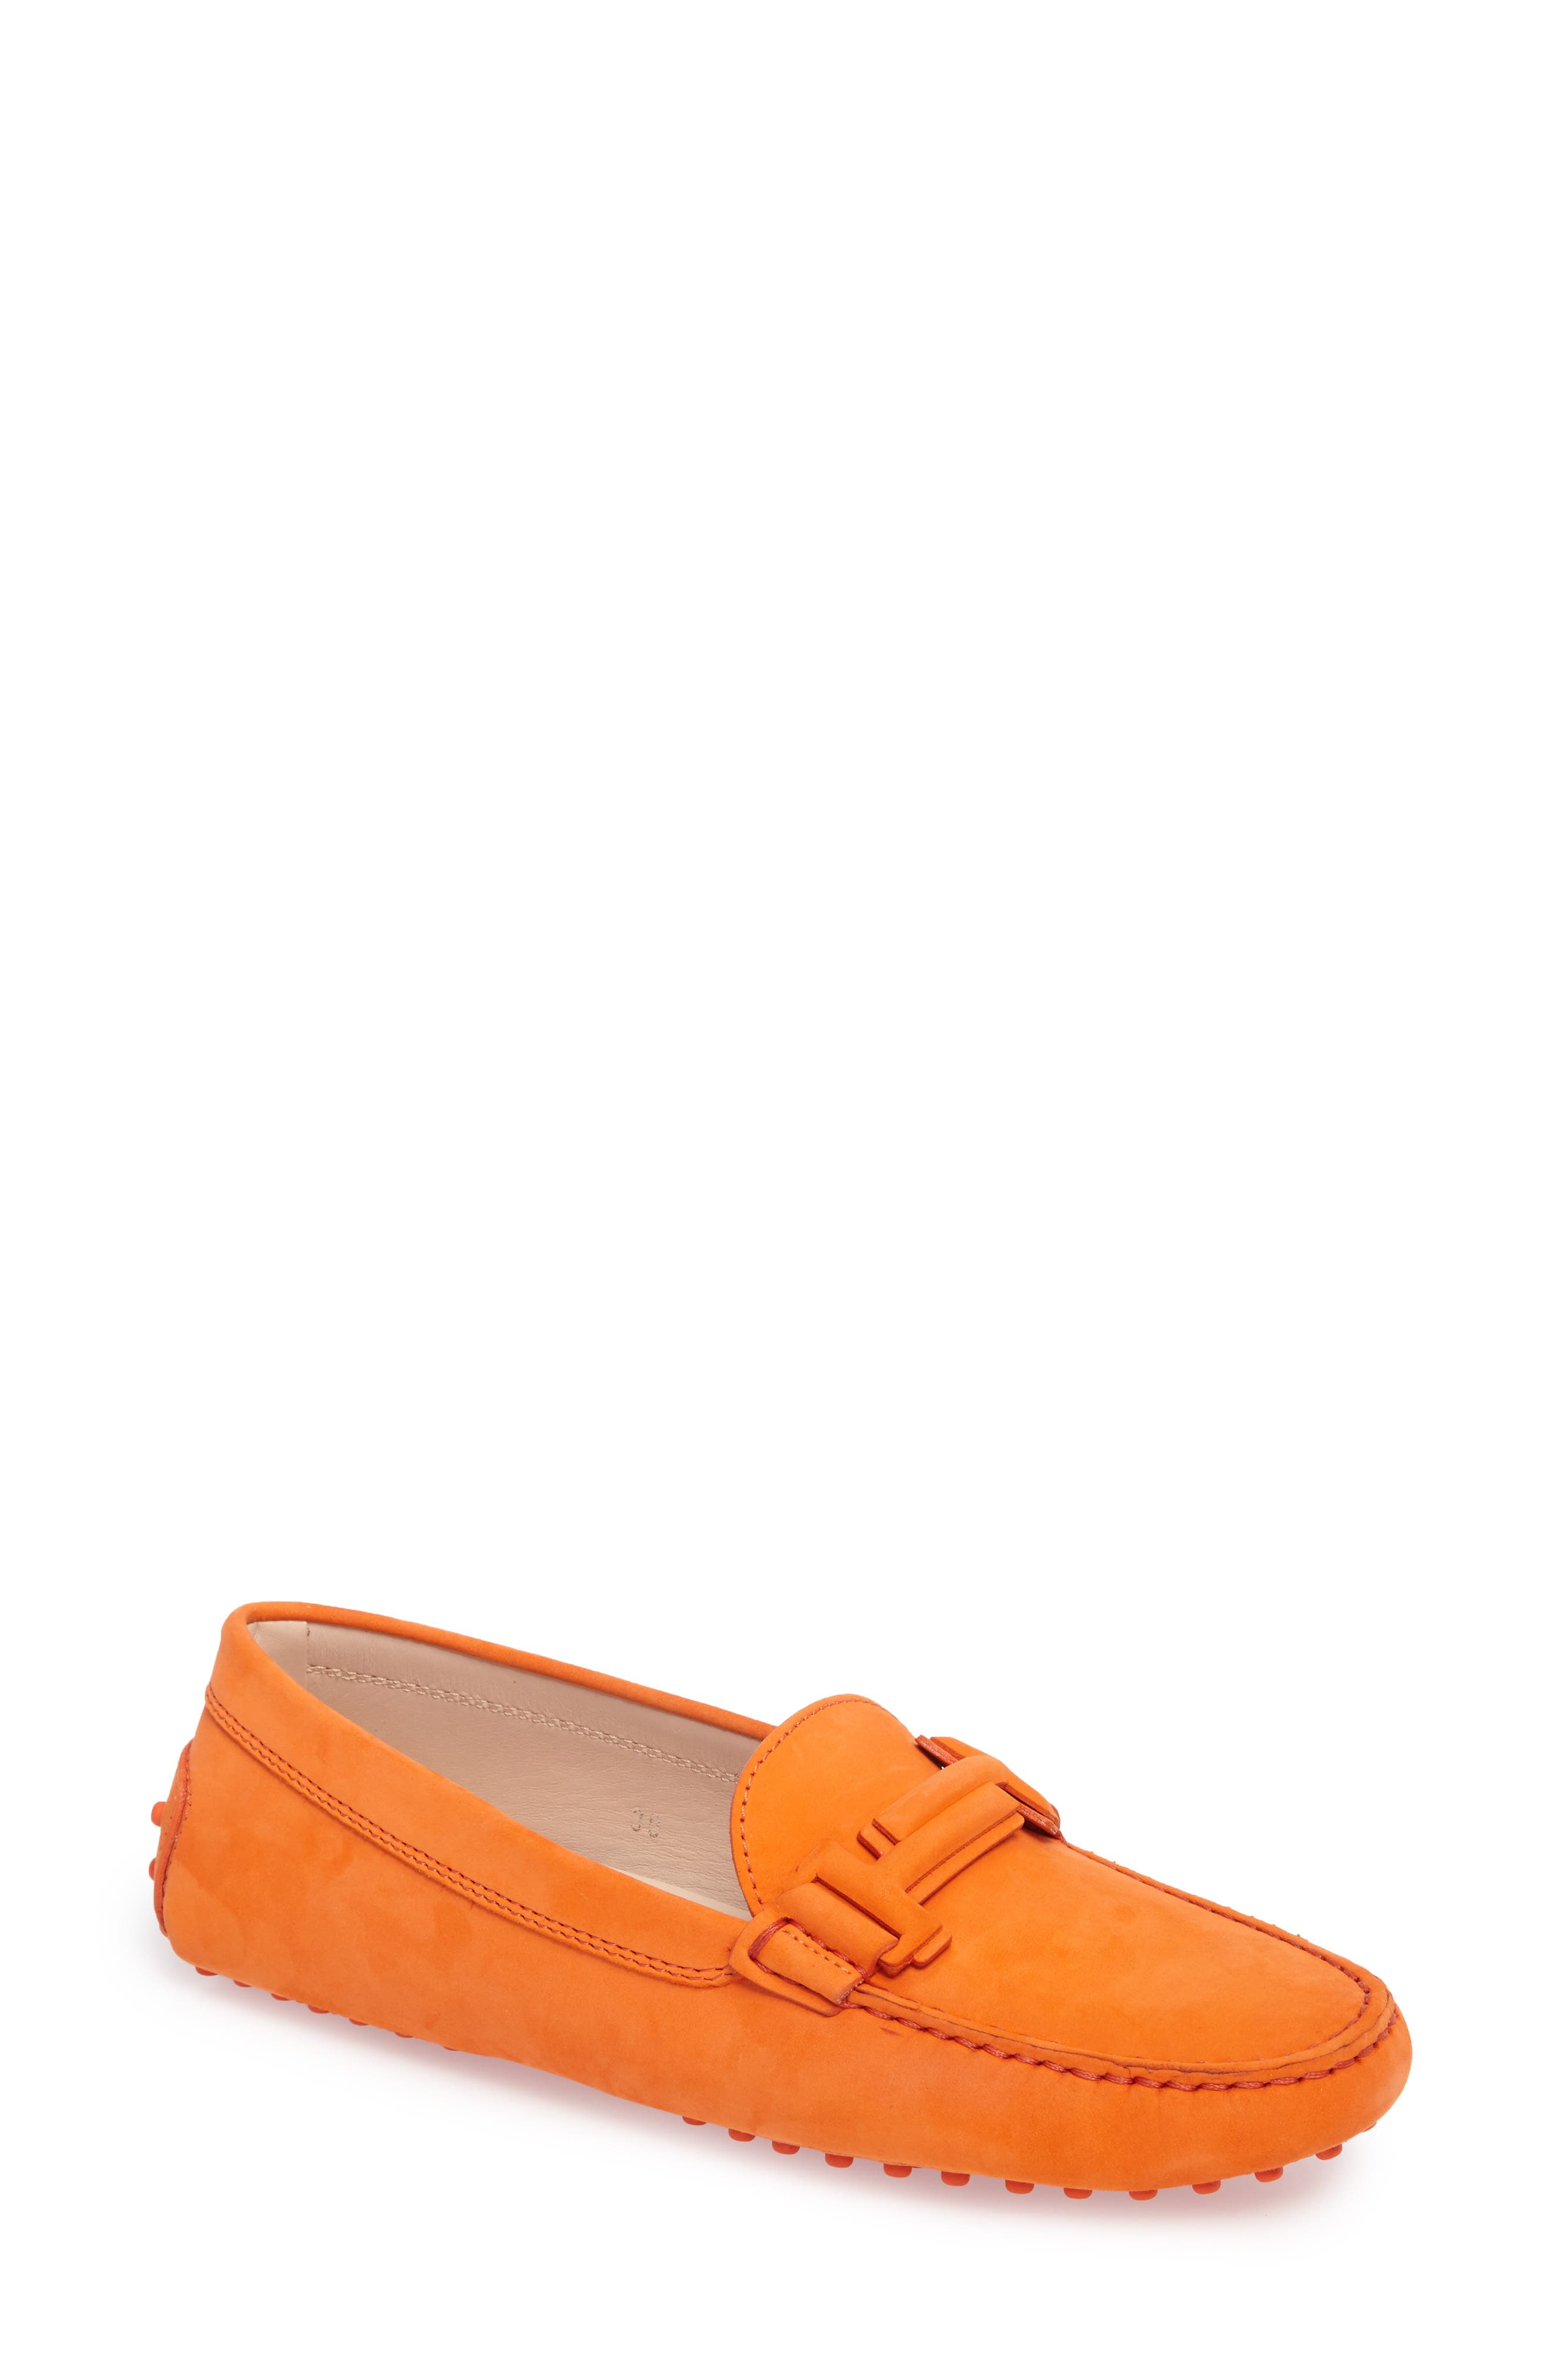 Gommini Covered Double T Loafer,                             Main thumbnail 3, color,